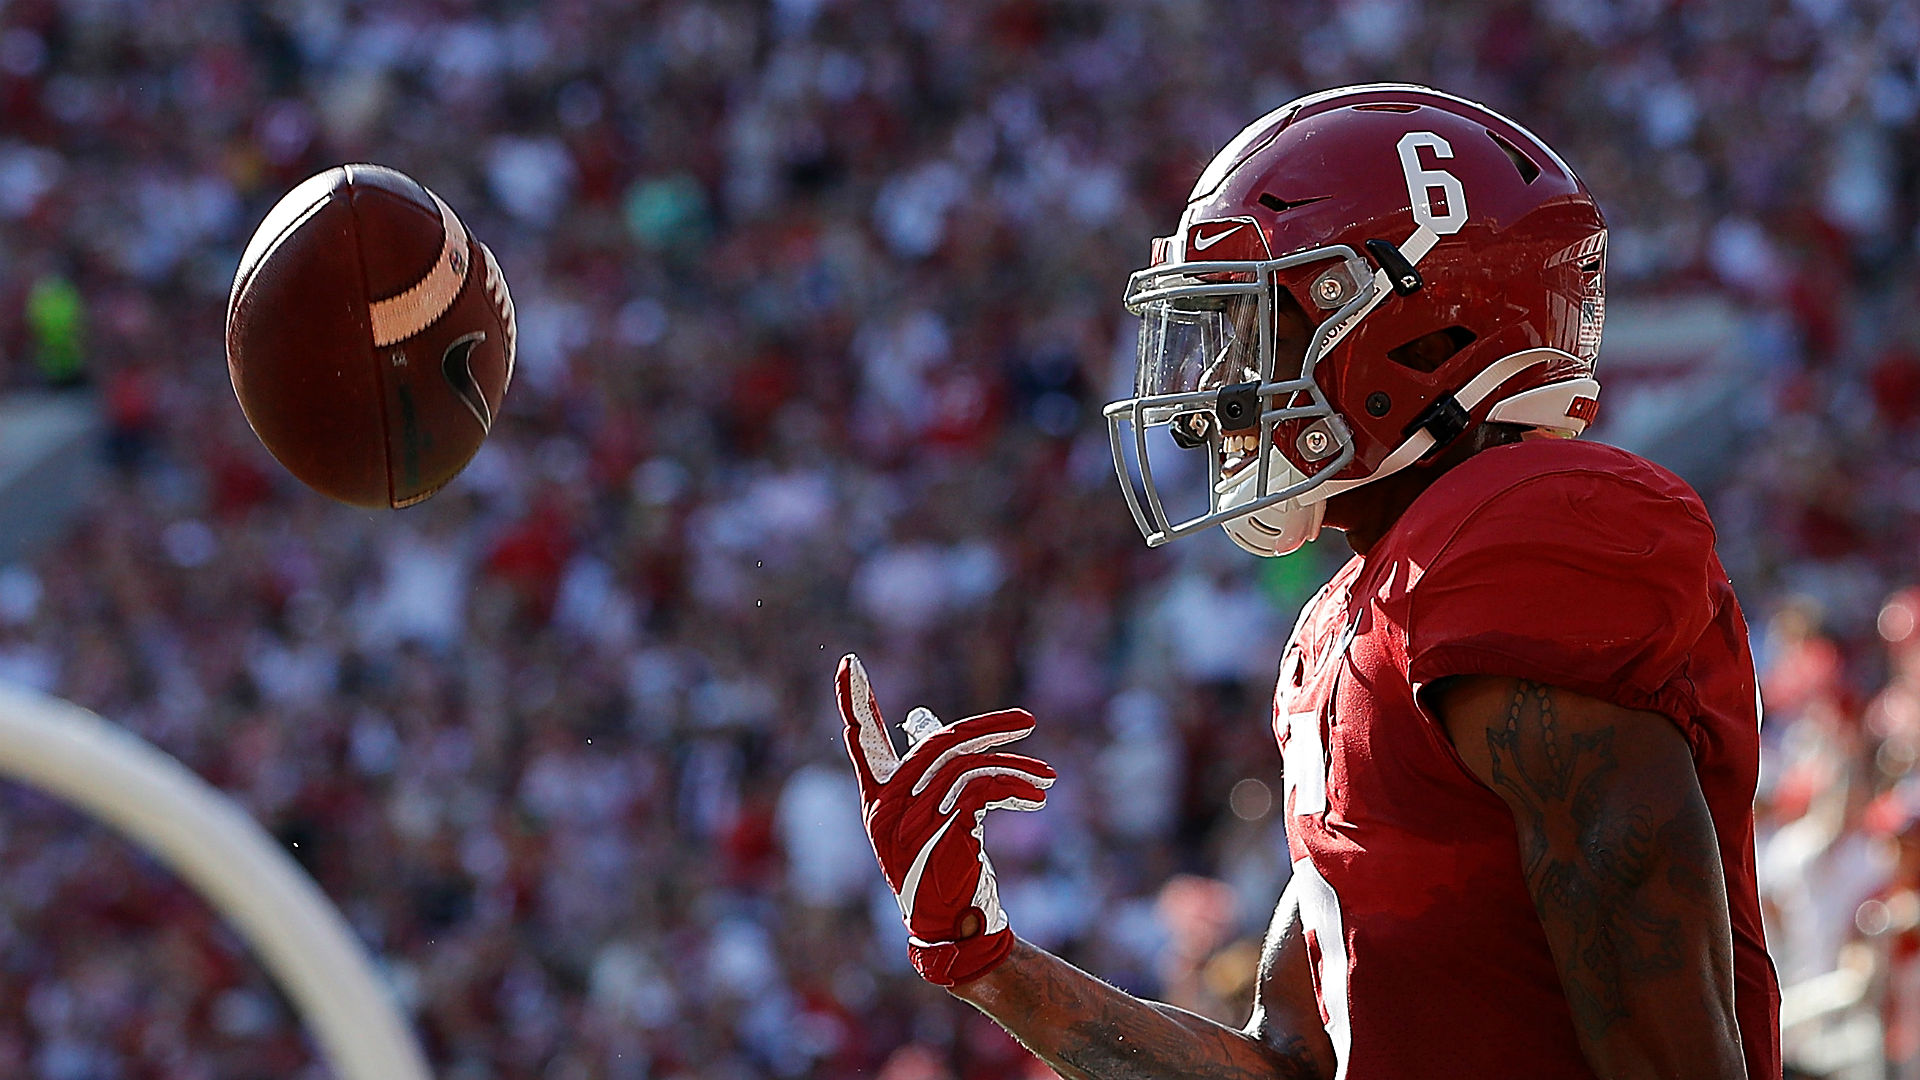 College football updated polls AP Top 25 Coaches Poll rankings after Week 7